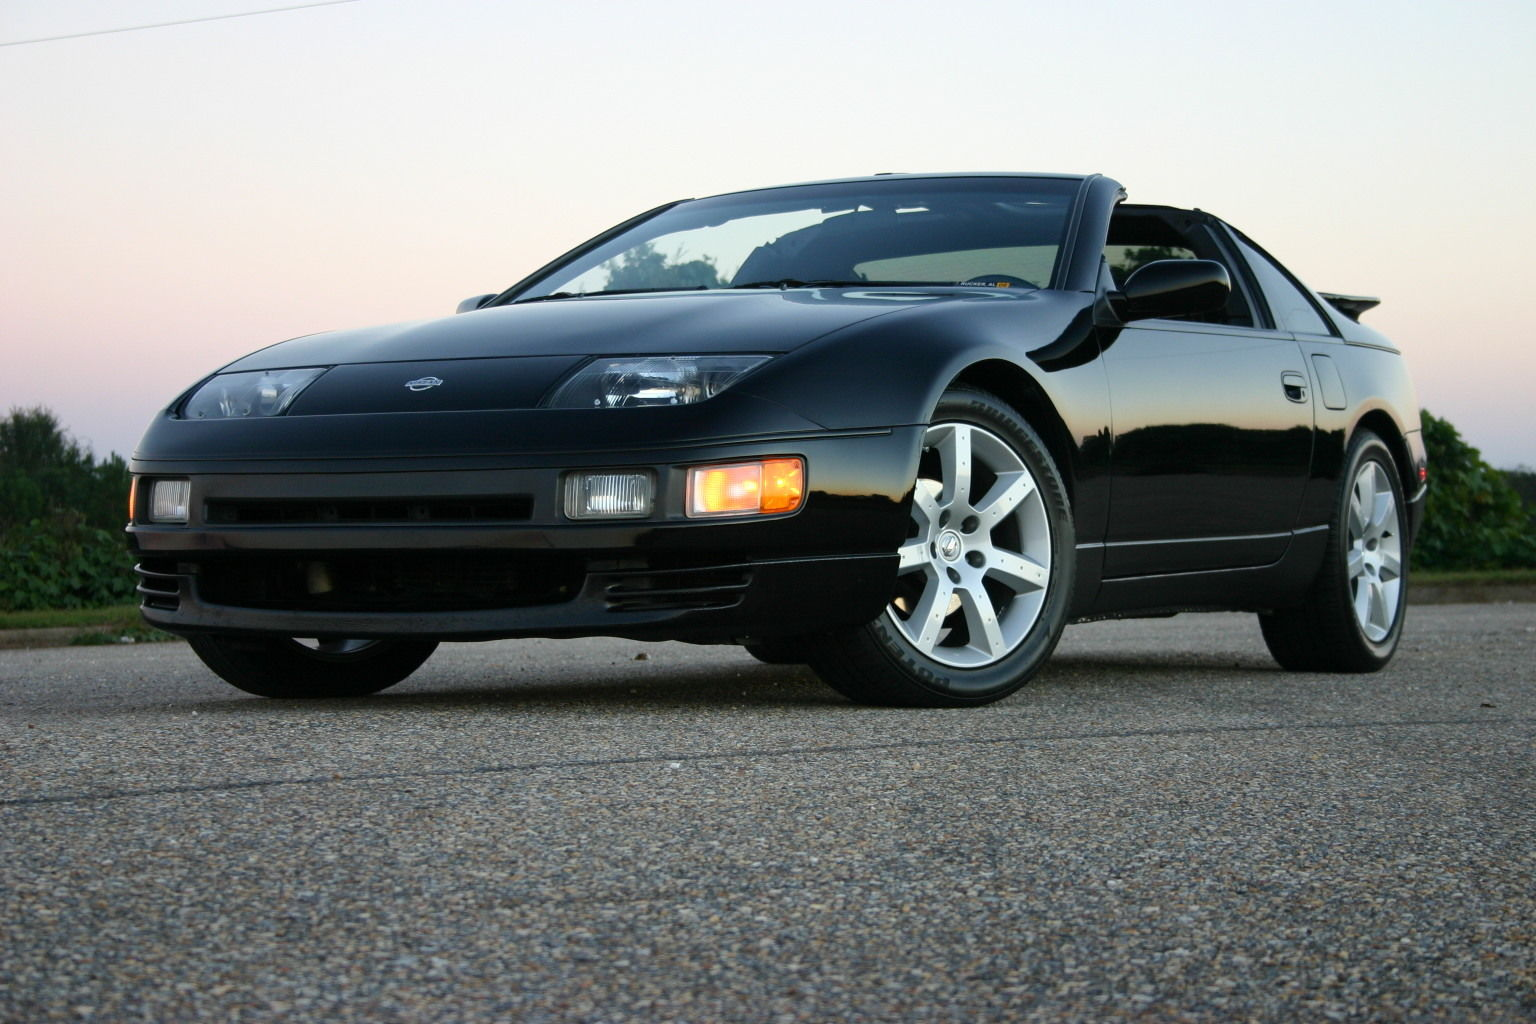 Enterprise Cars For Sale >> 1994 Nissan 300ZX Twin Turbo (Collectors Show Car) - Classic Nissan 300ZX 1994 for sale